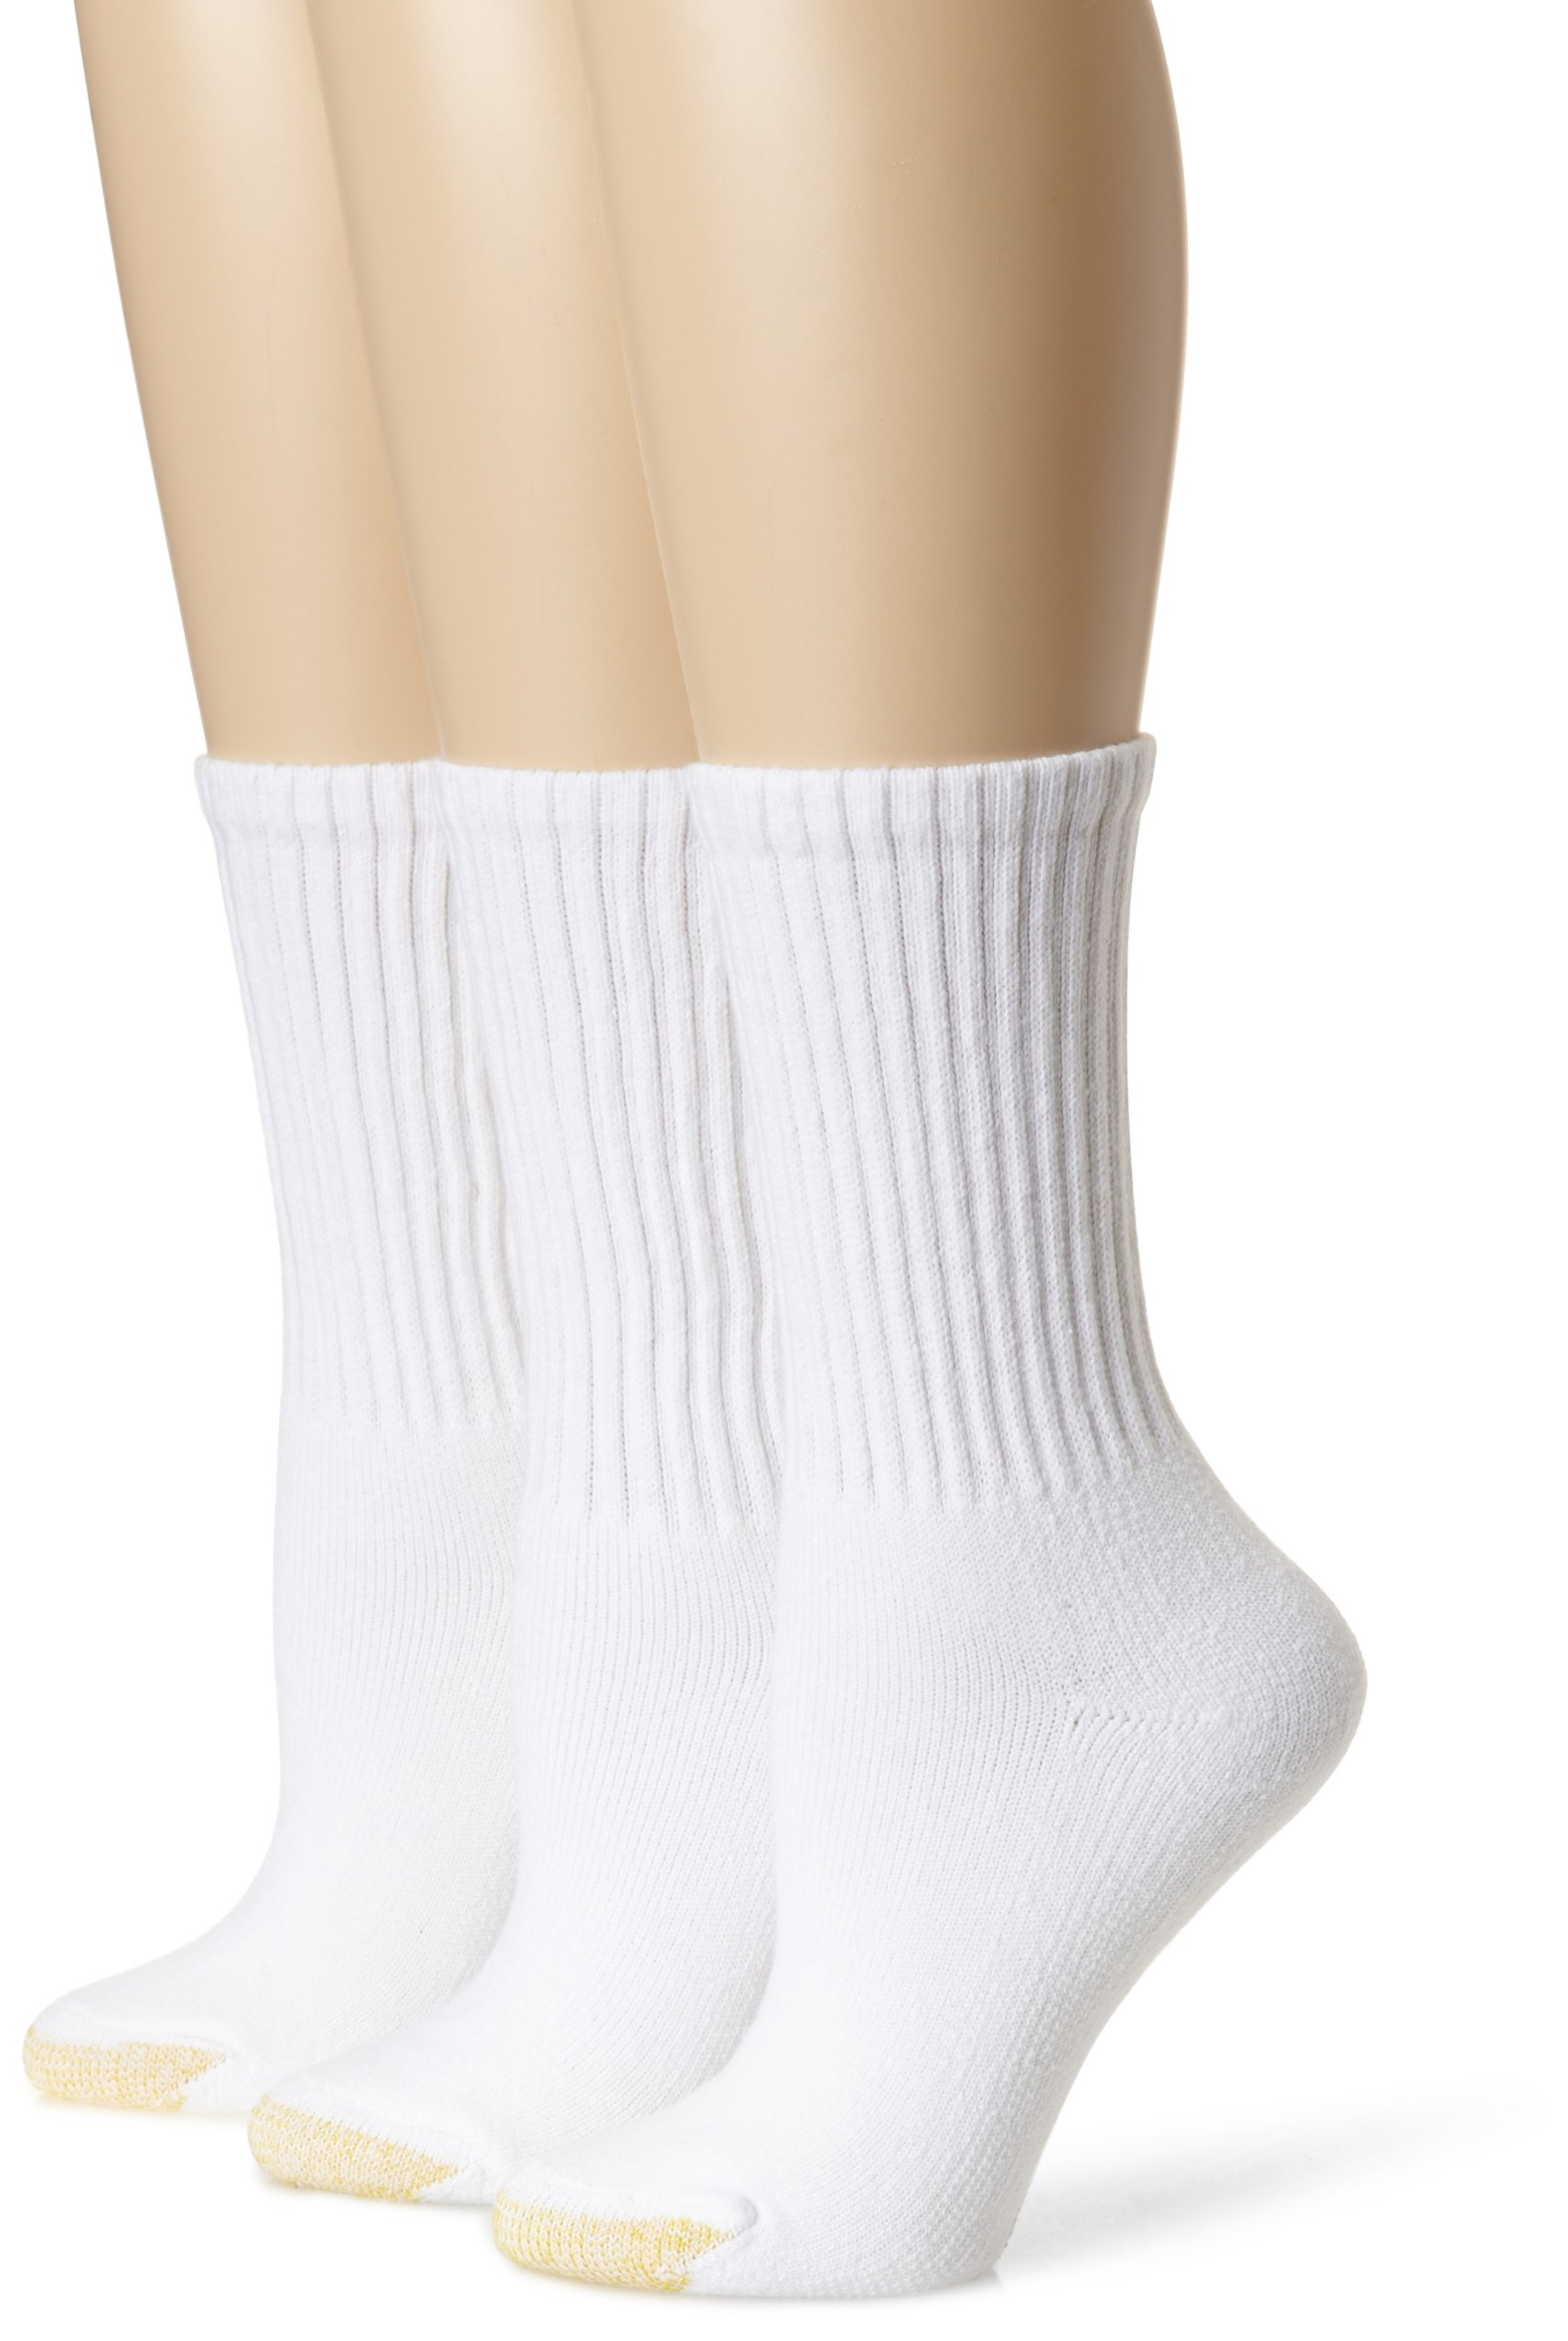 Gold Toe Woman's 3-Pack Ultratec Crew Socks, White, Shoe Size: 6-9